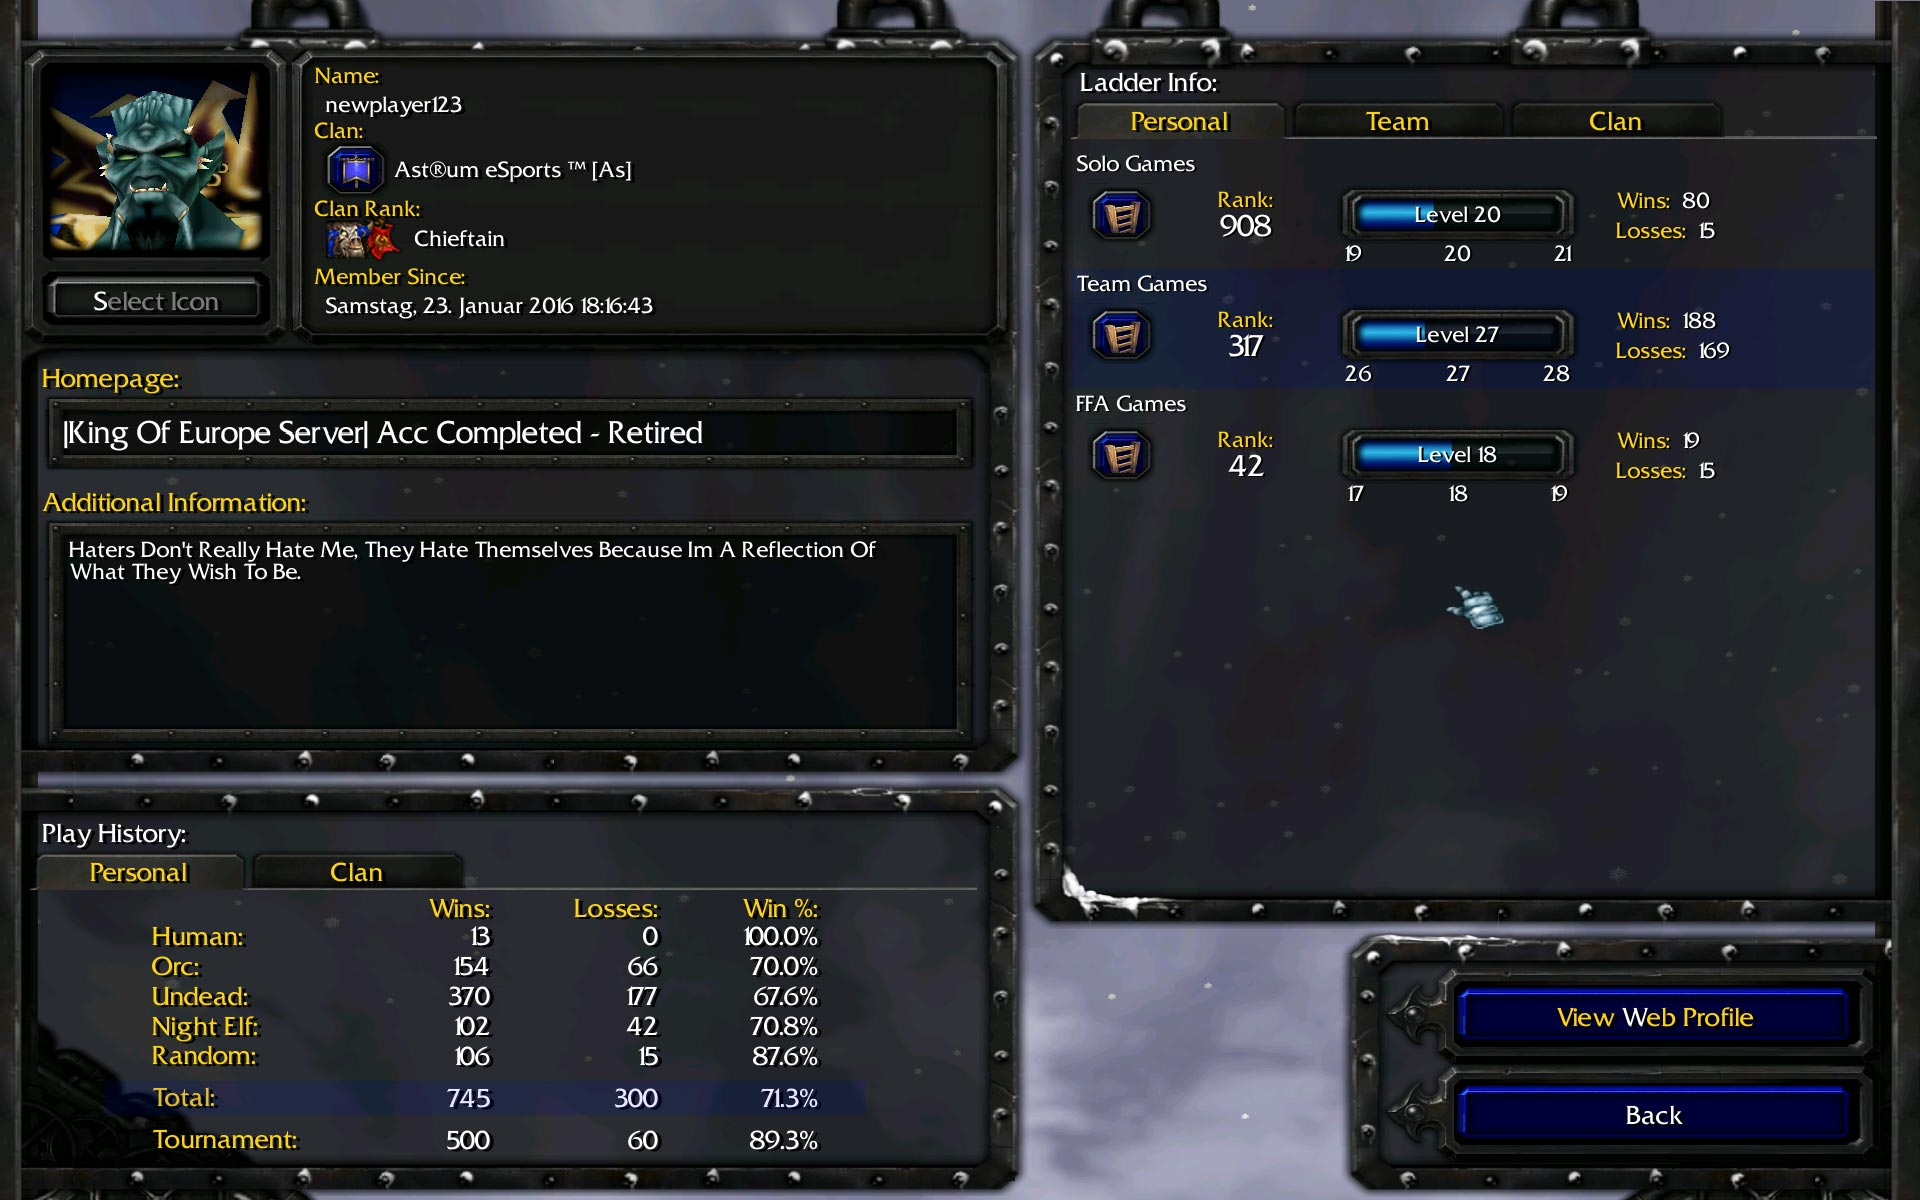 warcraft-3-hacker-newplayer123-cheater-on-europe-server